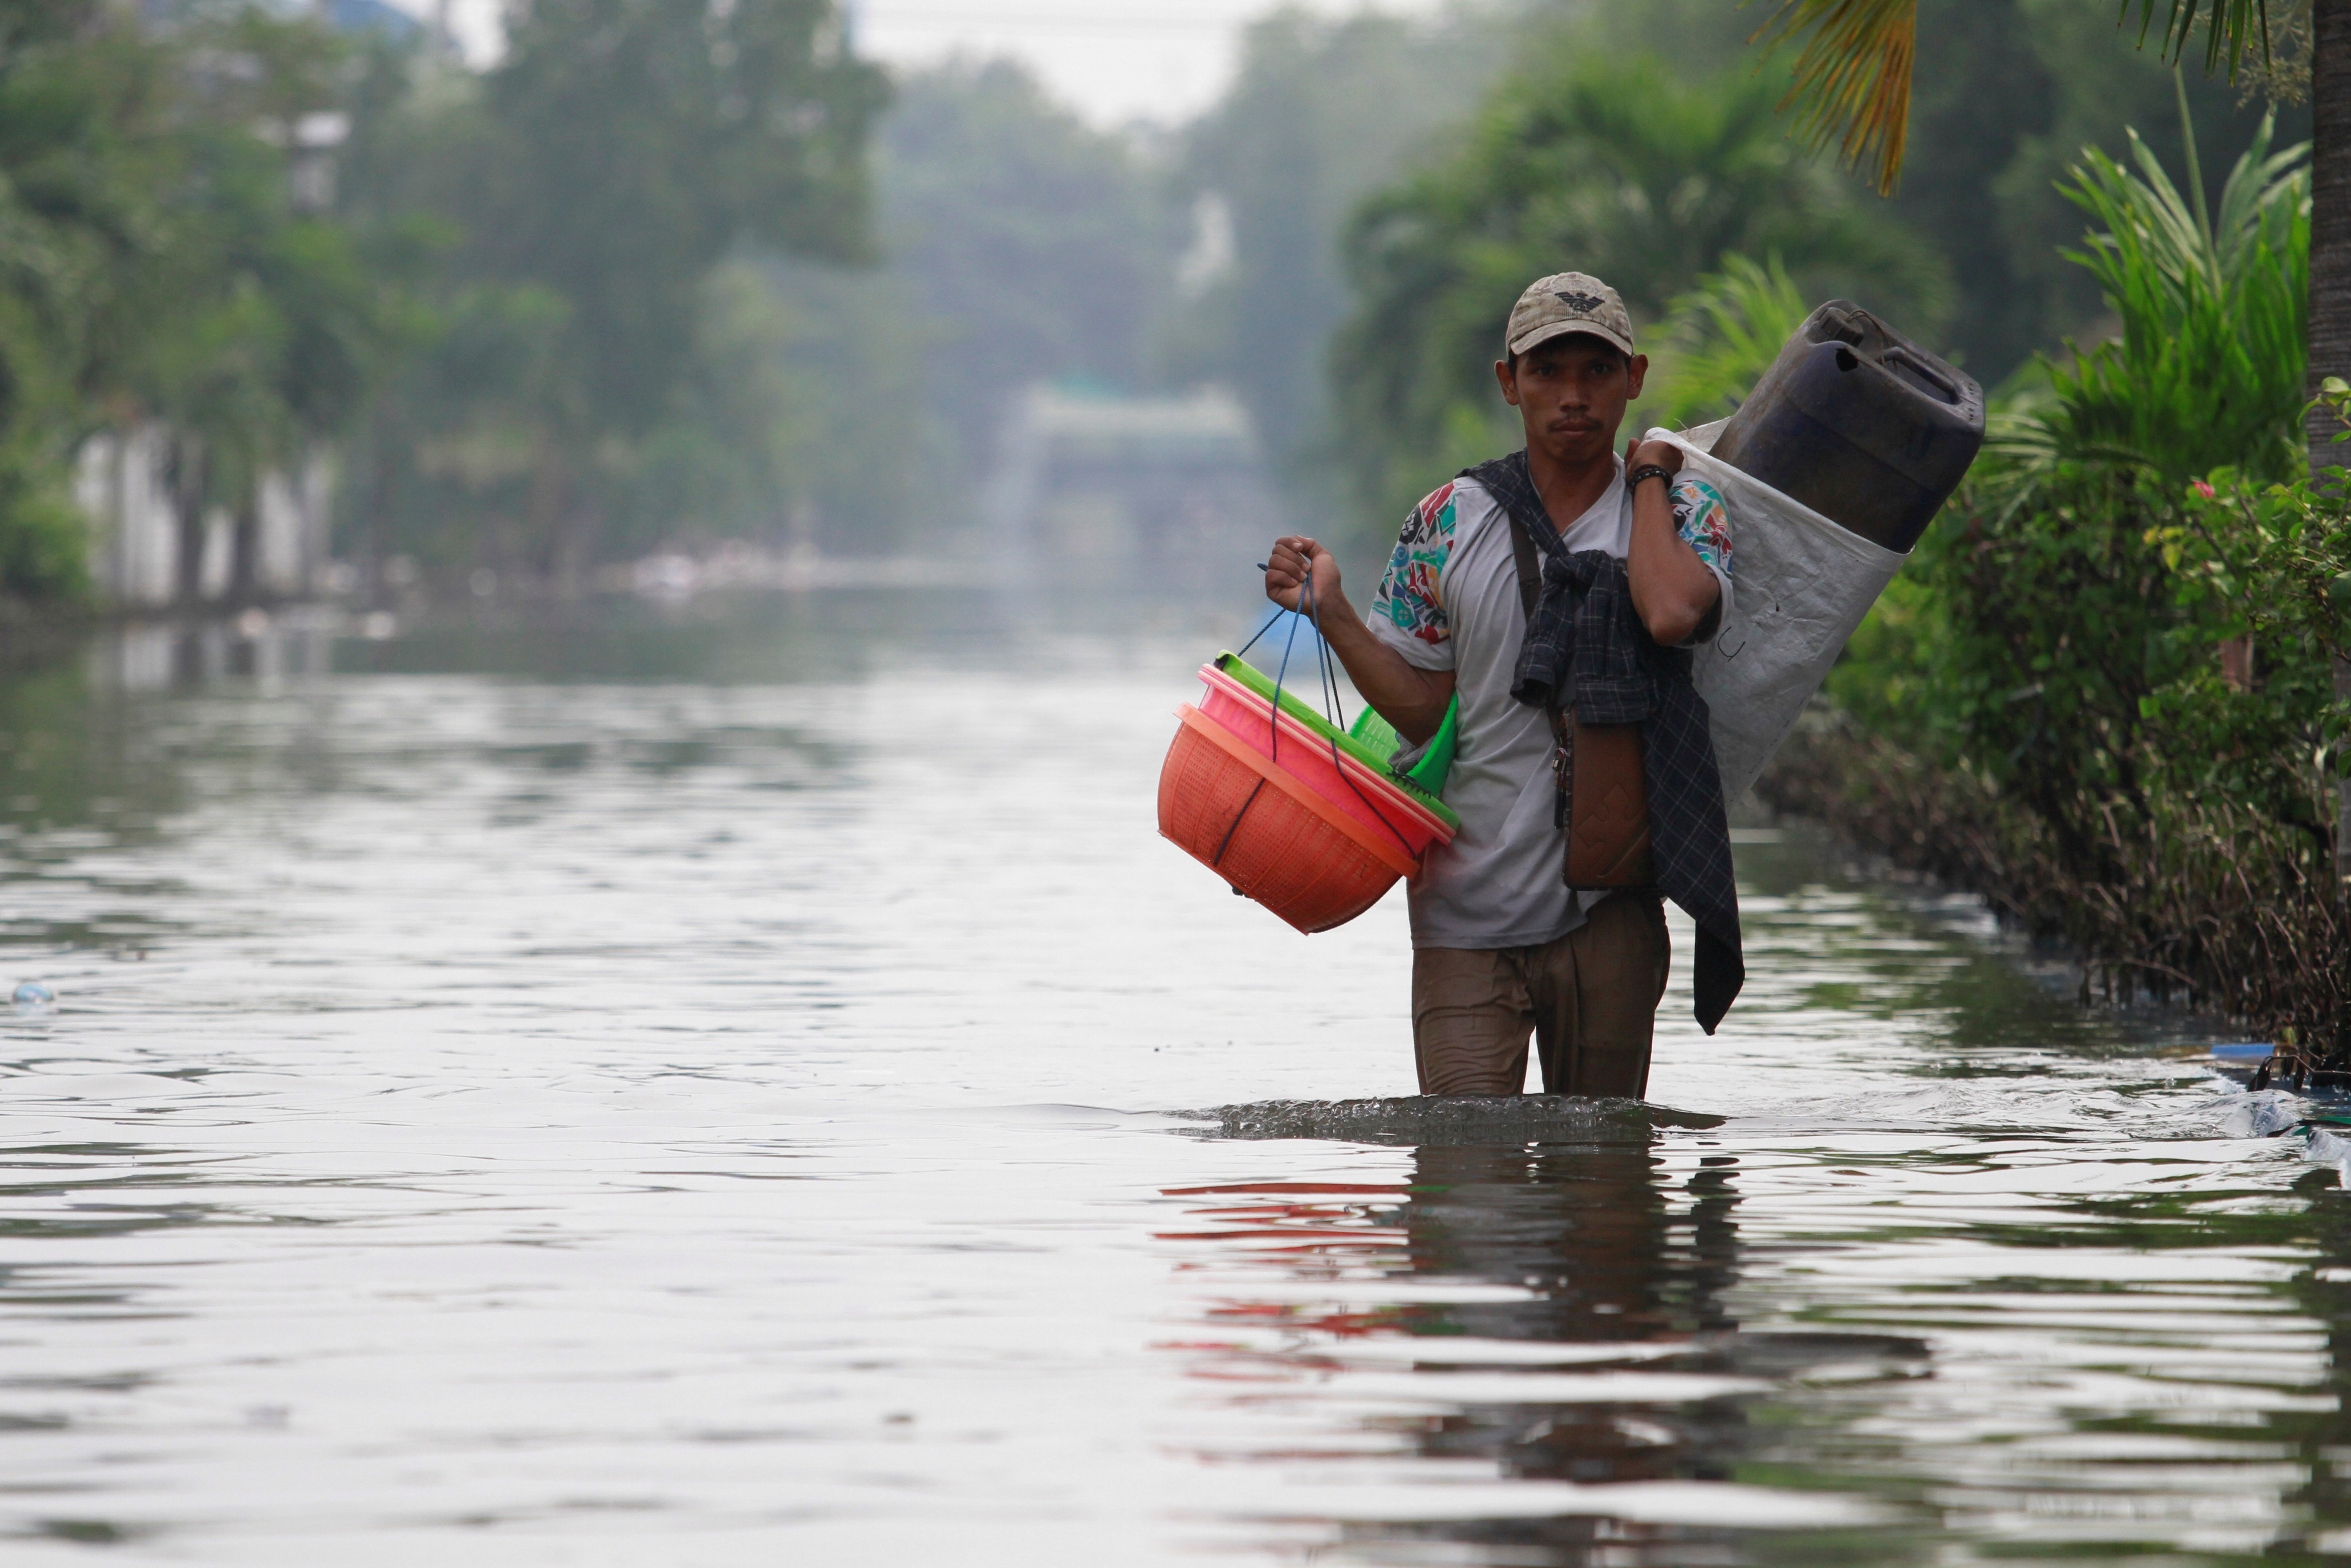 A man carries baskets through a flooded road, at an area affected by land subsidence and rising sea level in North Jakarta, Indonesia, June 5, 2020. REUTERS/Ajeng Dinar Ulfiana - RC2Y2H9Z3F92